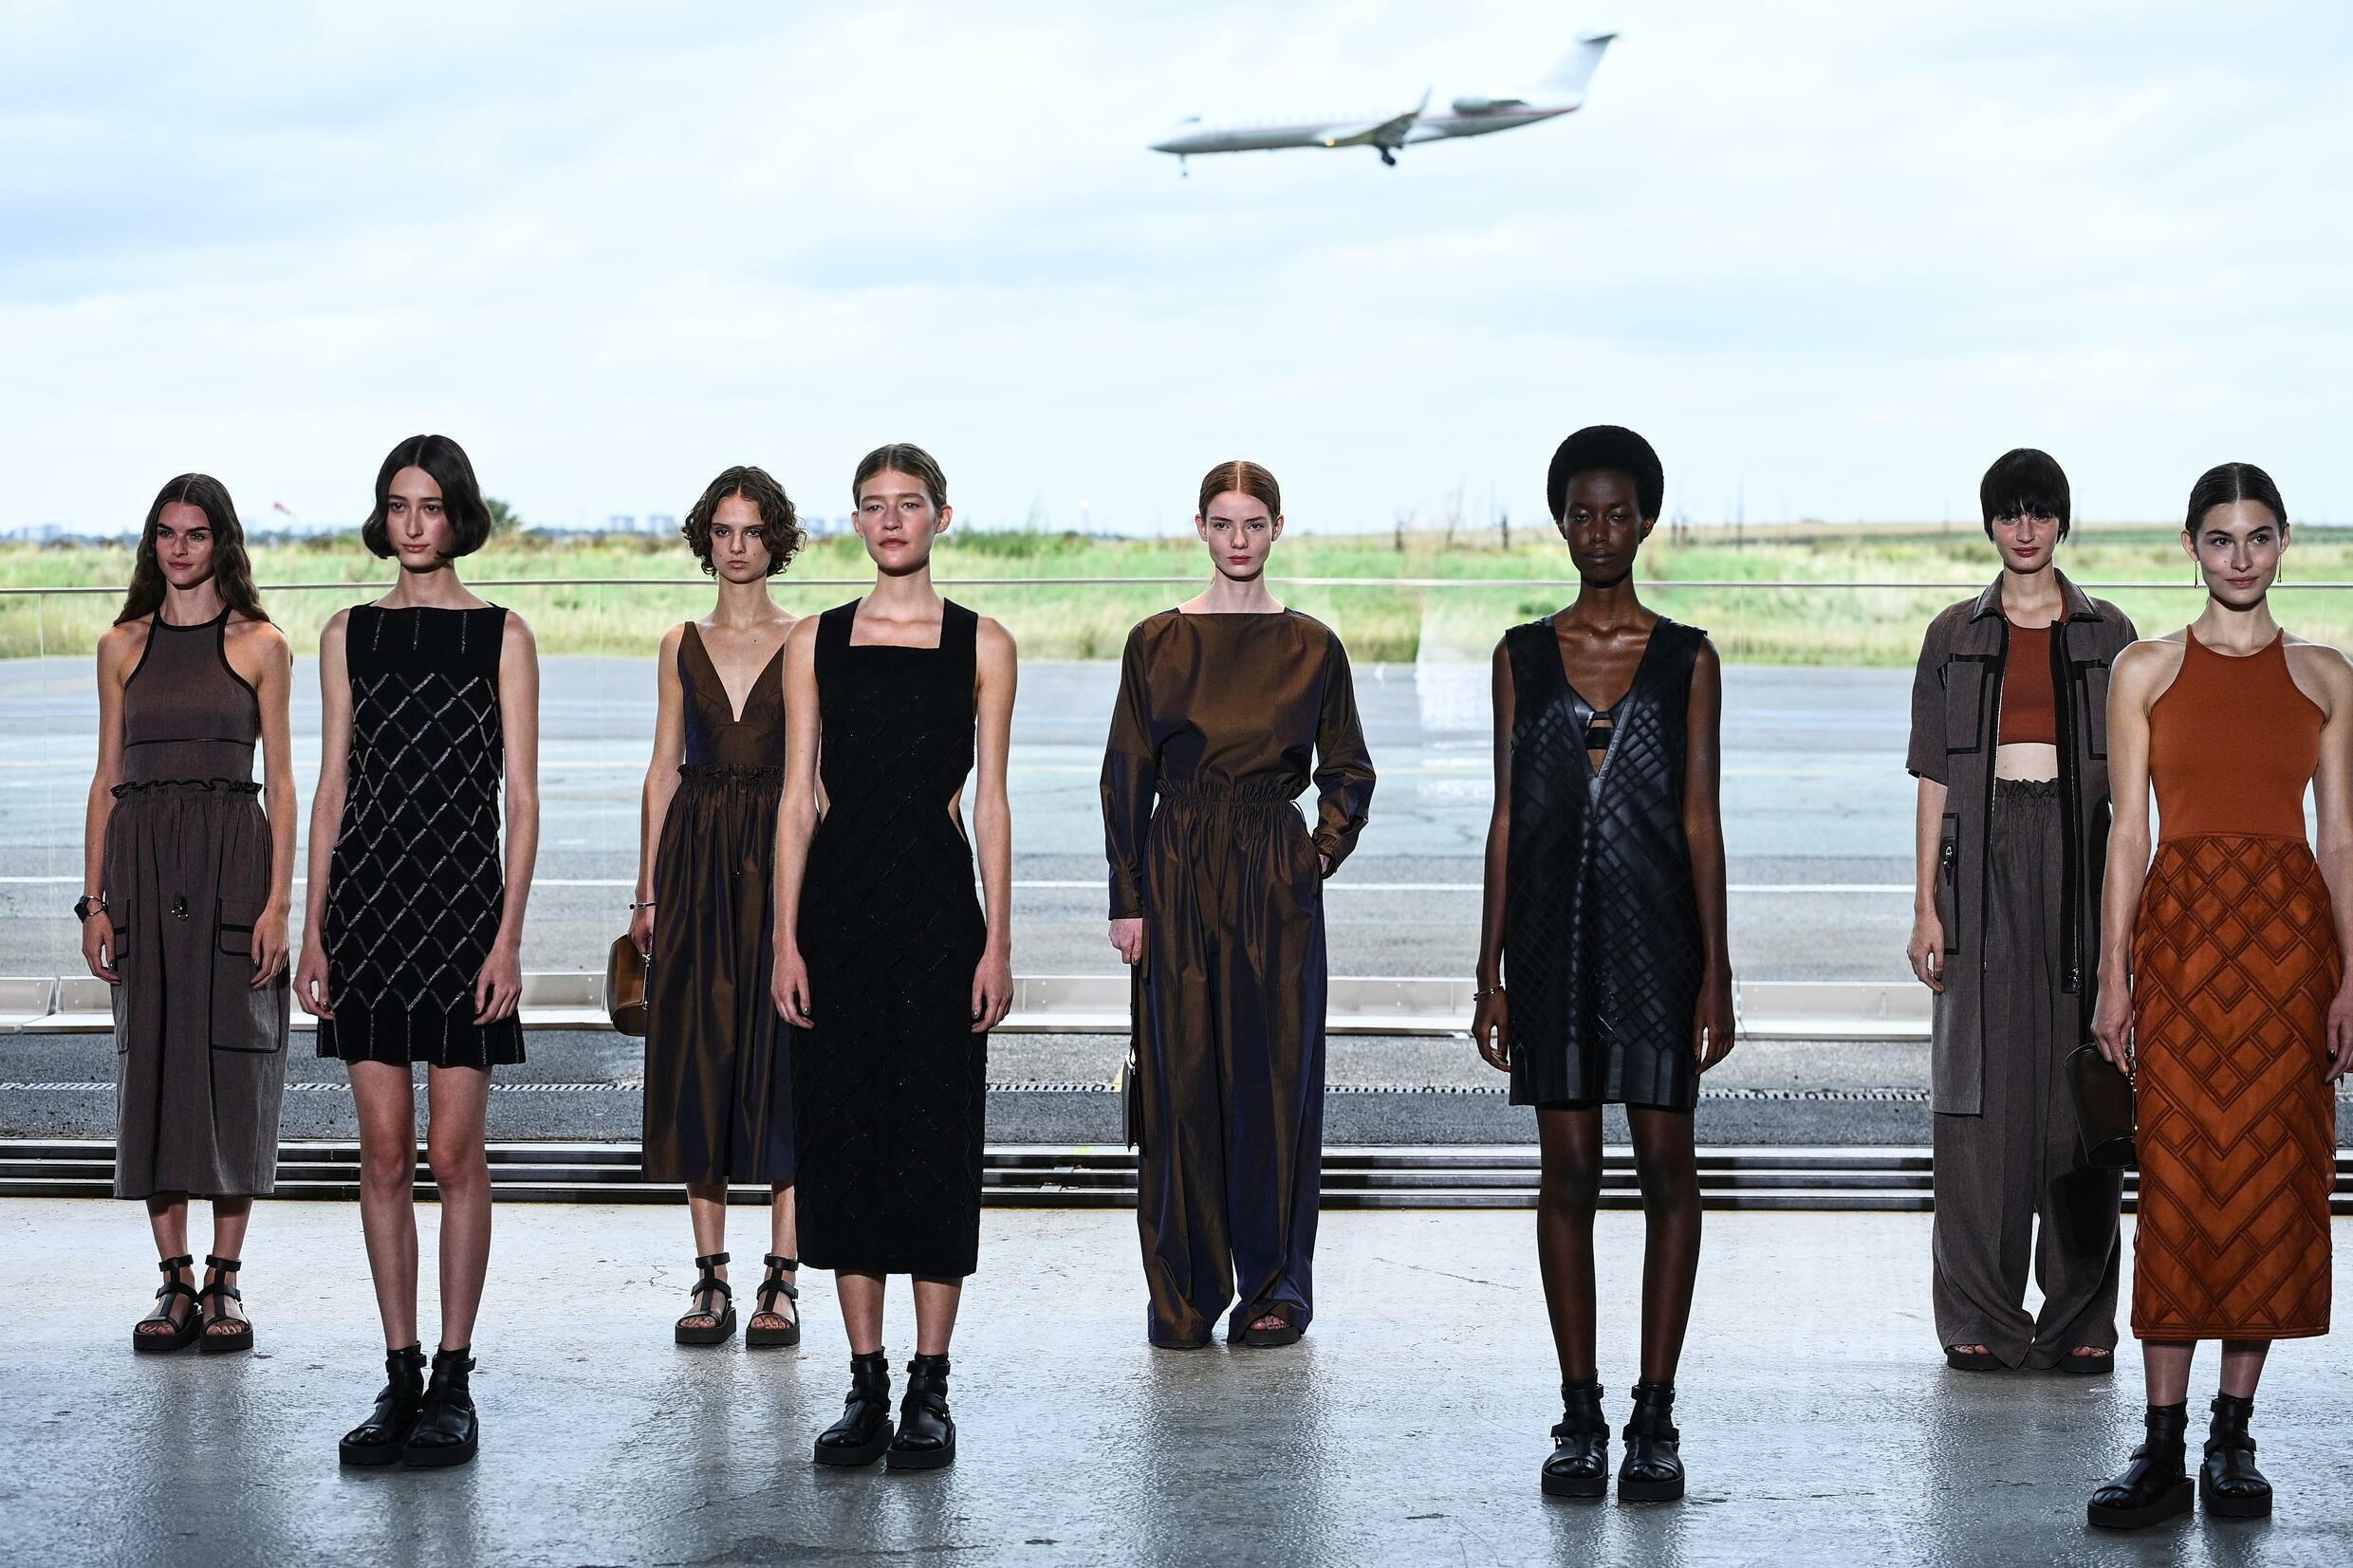 Hermès did not opt for an ecological atmosphere, setting up its show in an airport hangar outside Paris